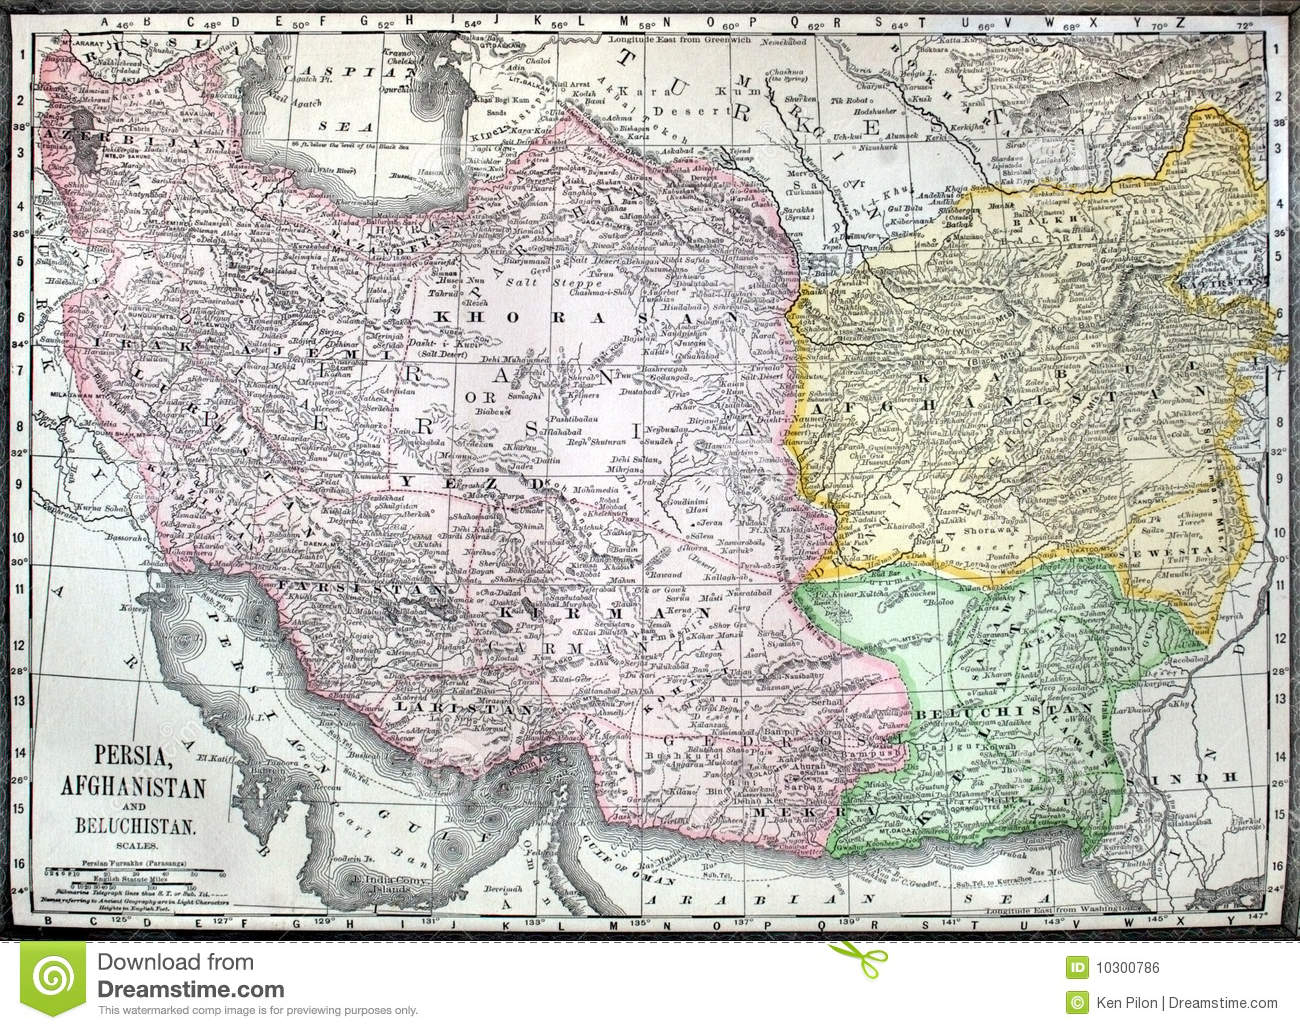 old-map-iran-afganistan-stan-10300786 Map Of Only Afghanistan on map of only congo, map of only switzerland, map of only middle east, map of only equatorial guinea, map of only mexico, map of only lithuania, map of only latvia, map of only canada, map of only iran, map of only saudi arabia, map of only bolivia, map of only guatemala, map of only norway, map of only kuwait, map of only el salvador, map of only south africa, map of only pakistan, map of only southern italy, map of only france, map of only eurasia,